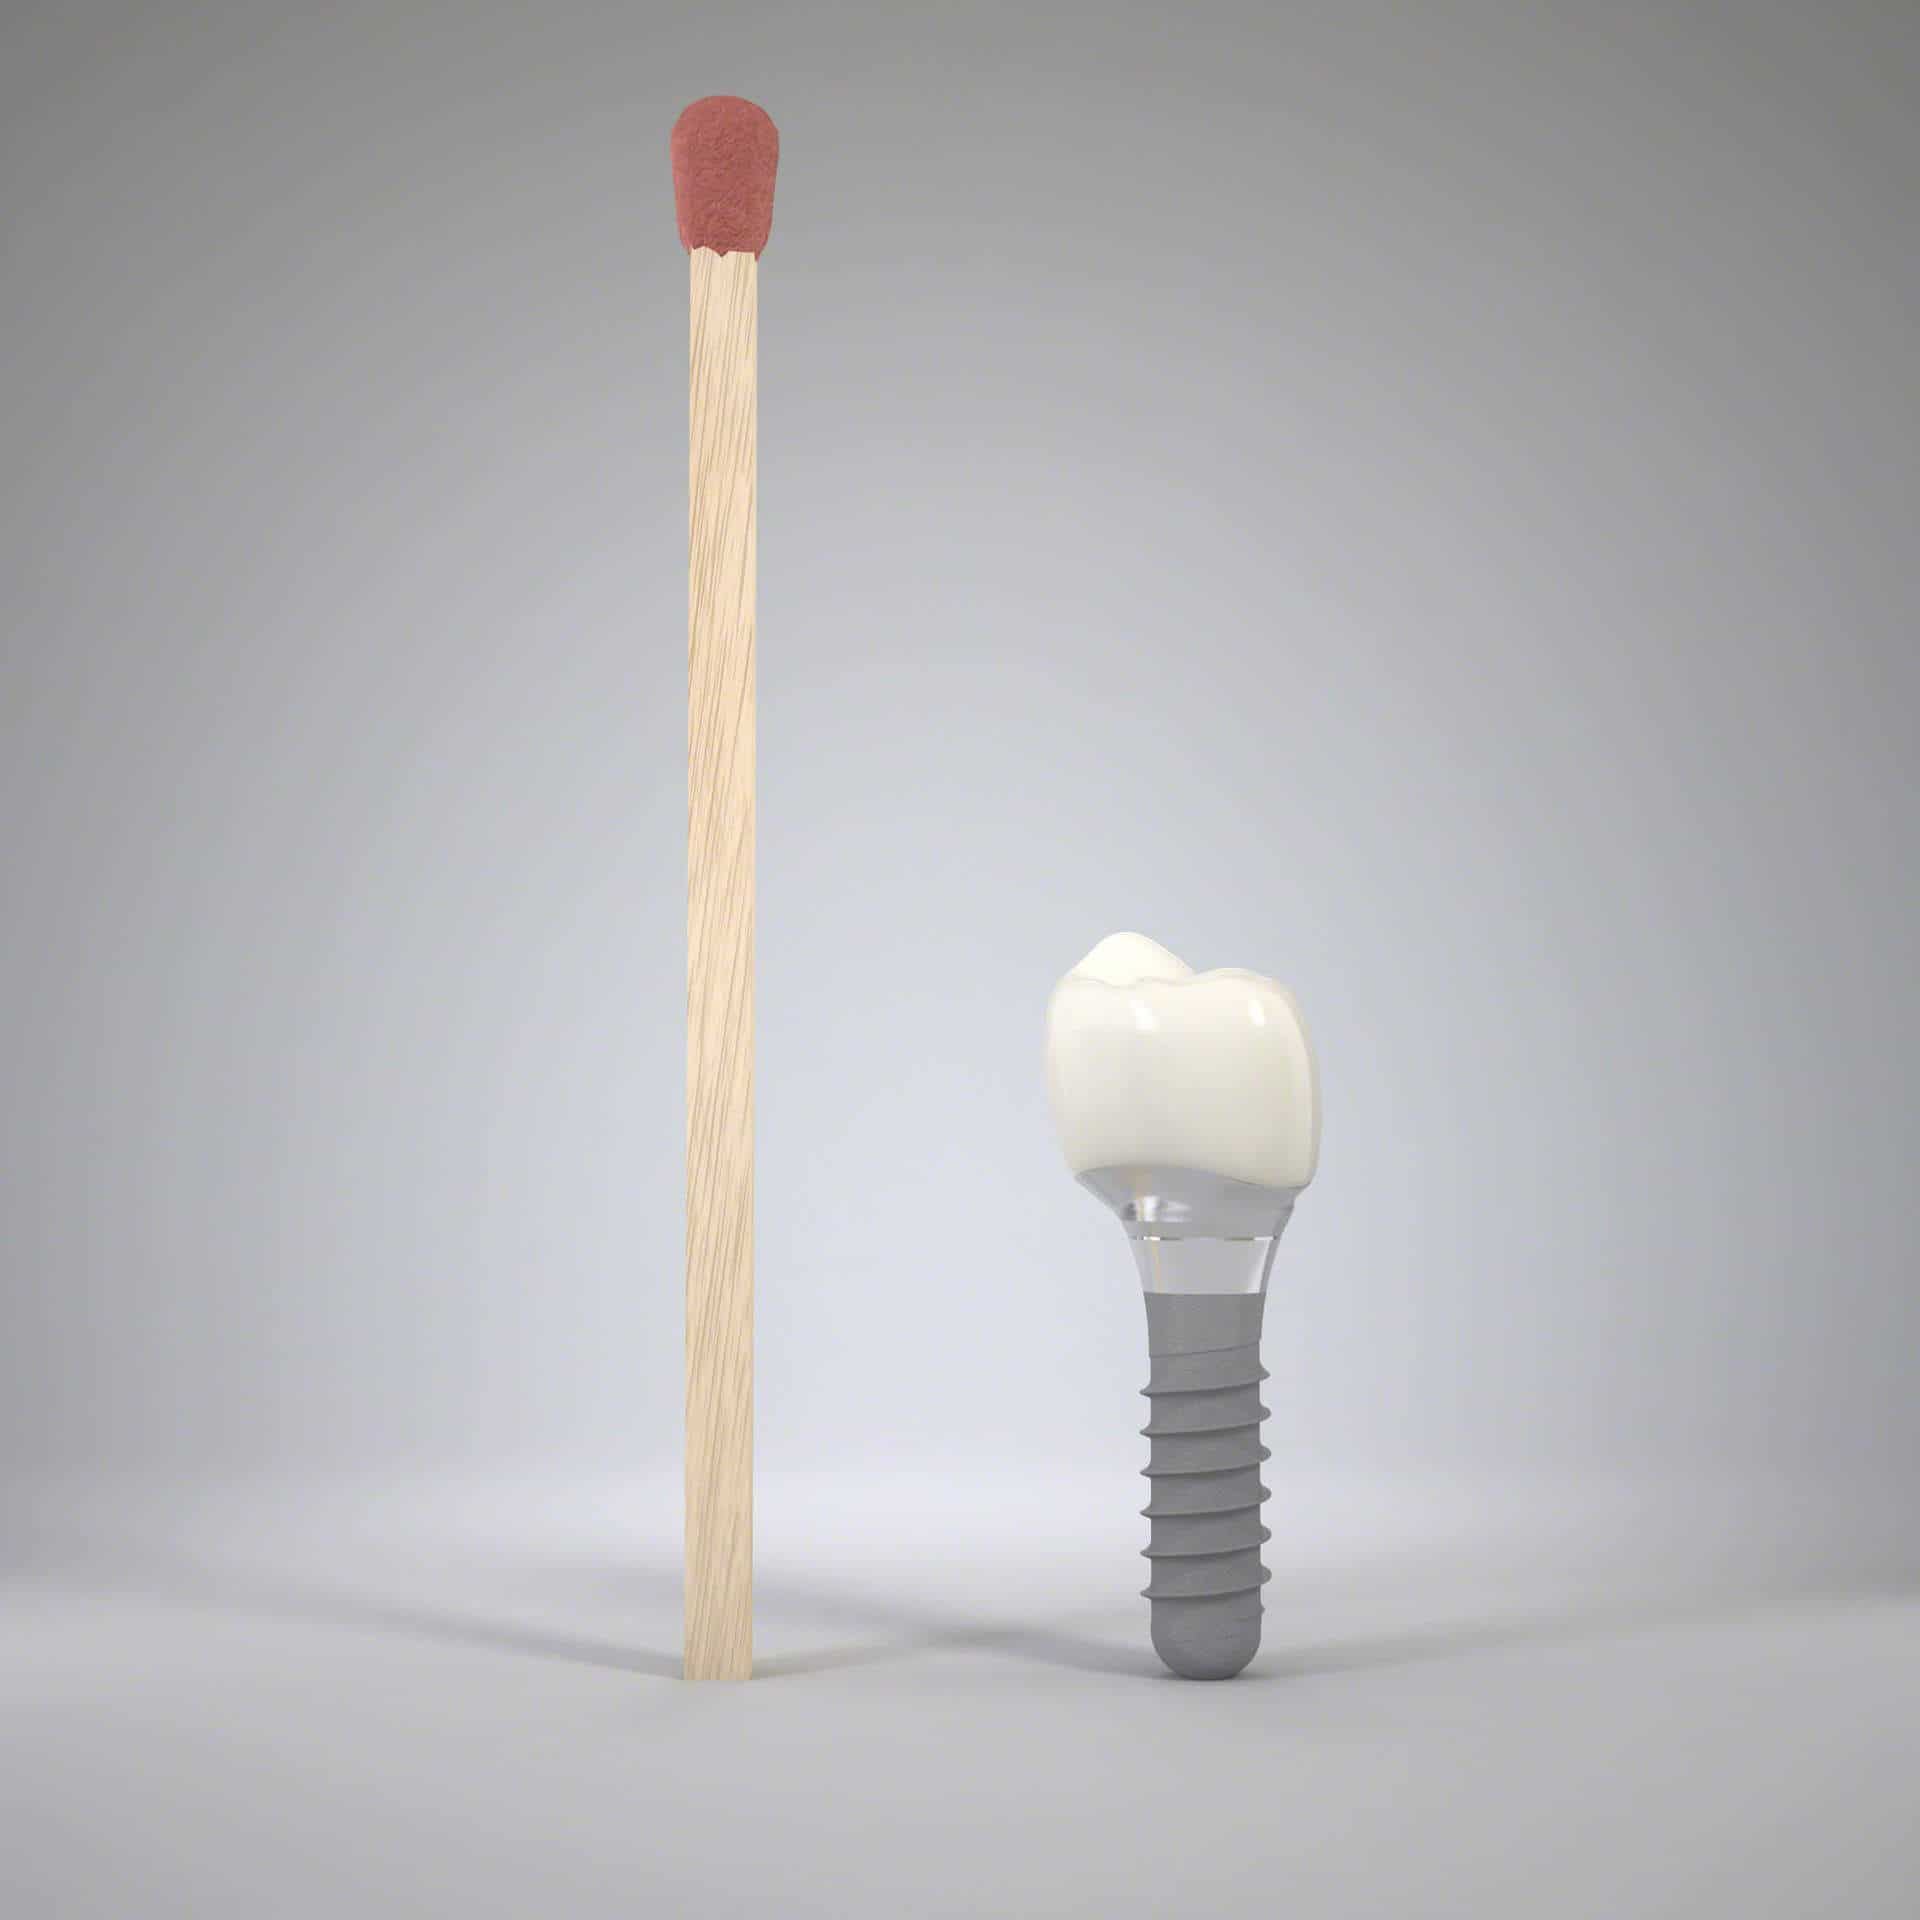 Size of an implant borne artifical tooth | Straumann ® implant with crown